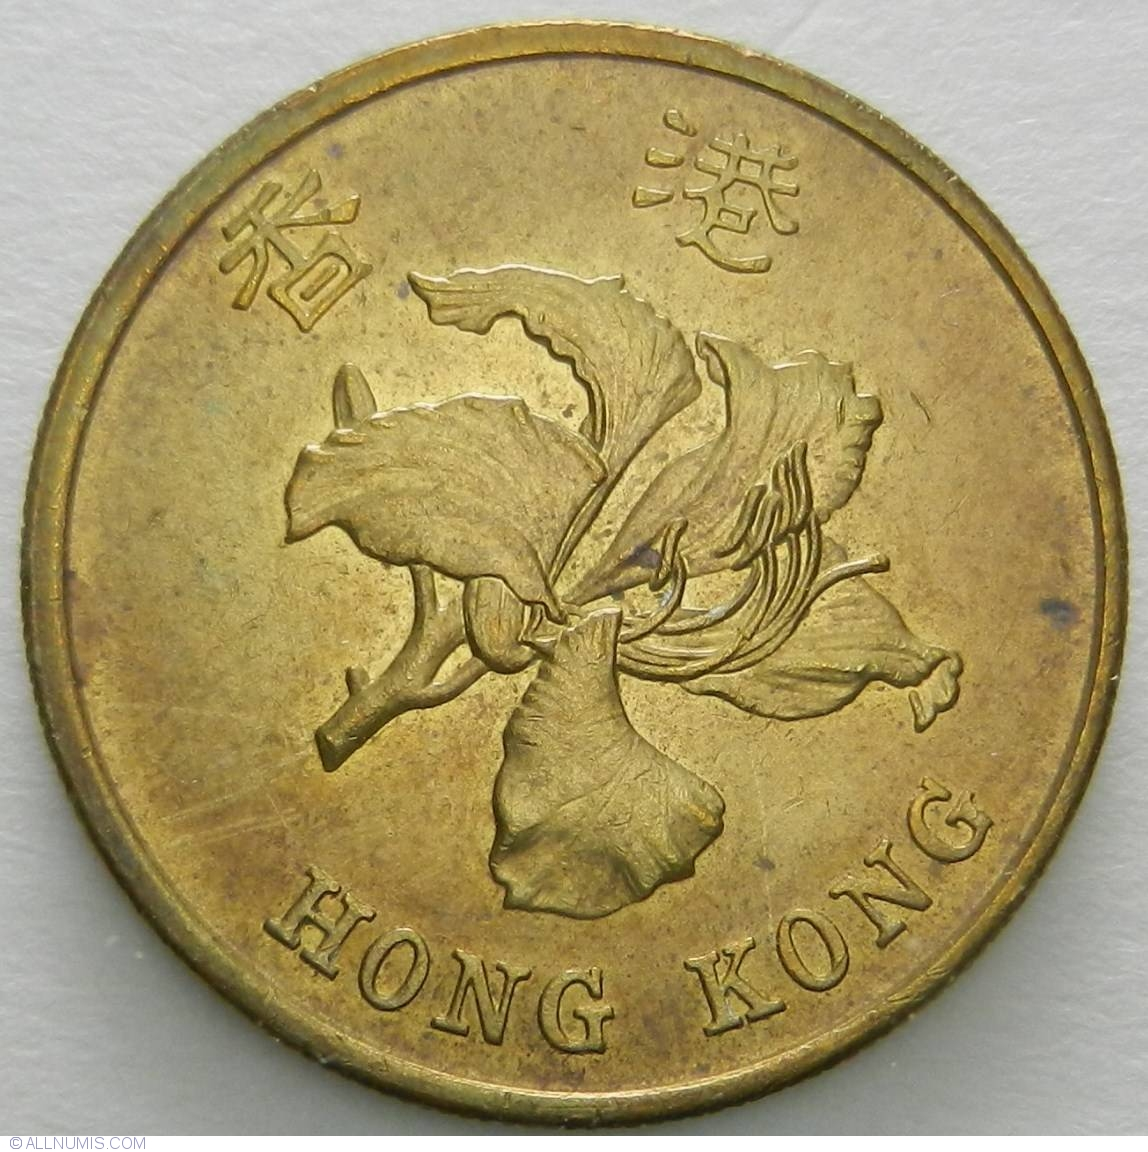 HONG KONG 50 CENTS 1997 KM# 74 ANIMAL OX COW RARE COMMEMORATIVE UNC COIN